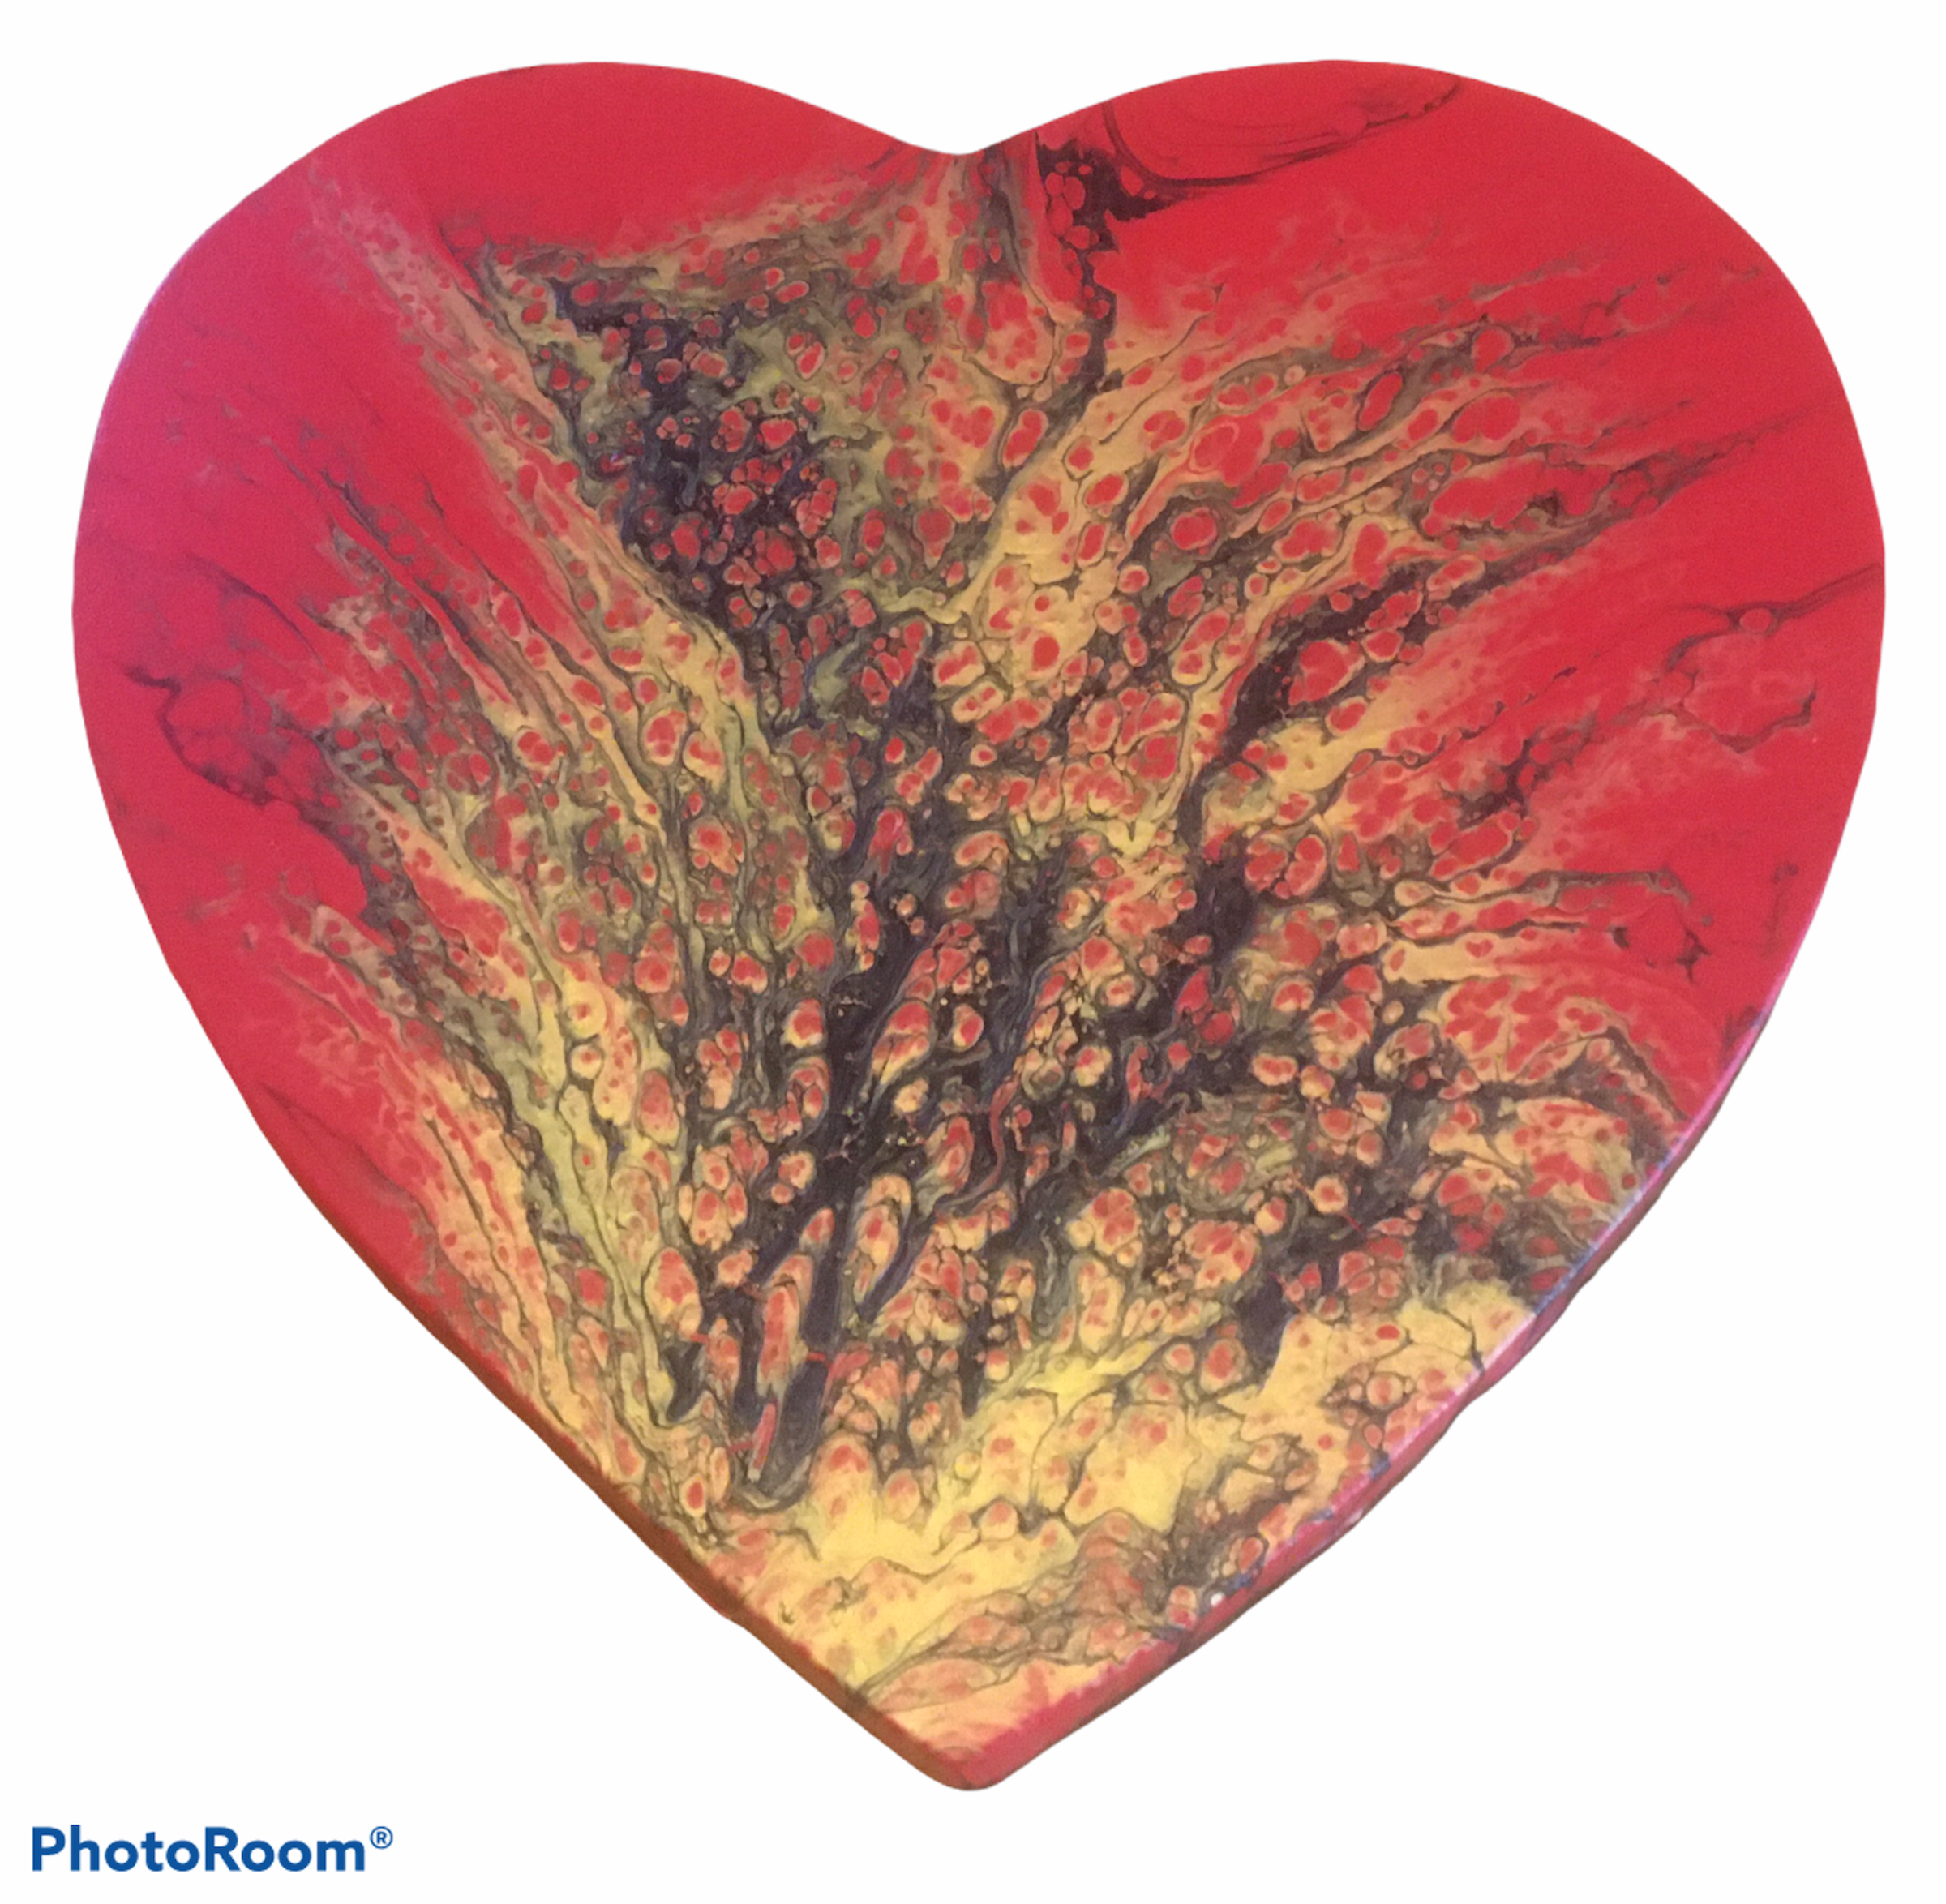 Fluid Art Heart – Amor De Fuego